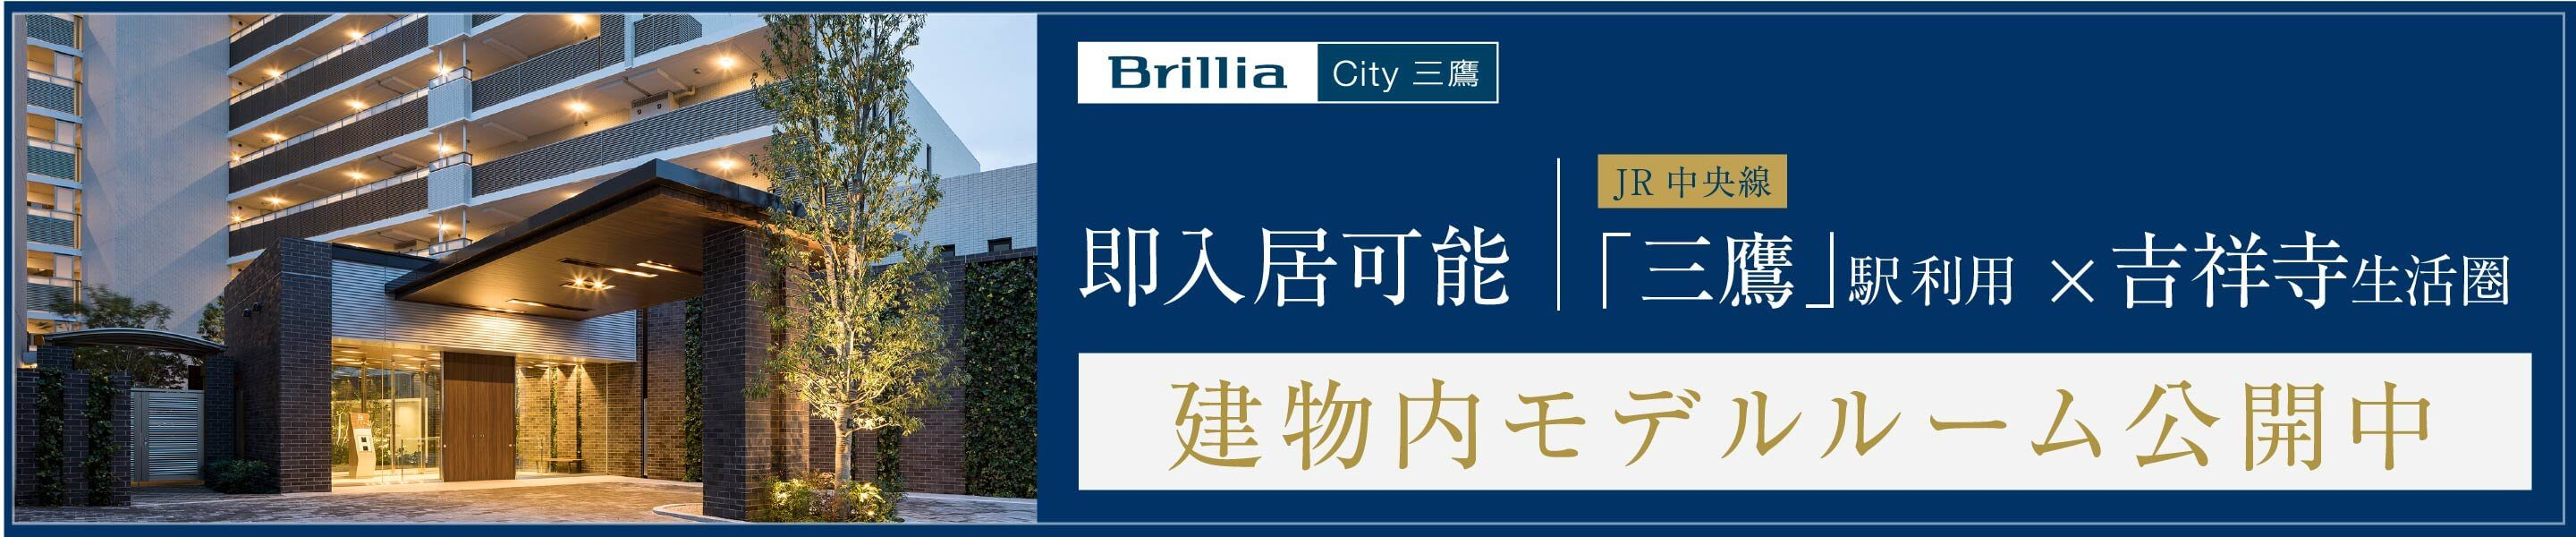 Brillia City 三鷹